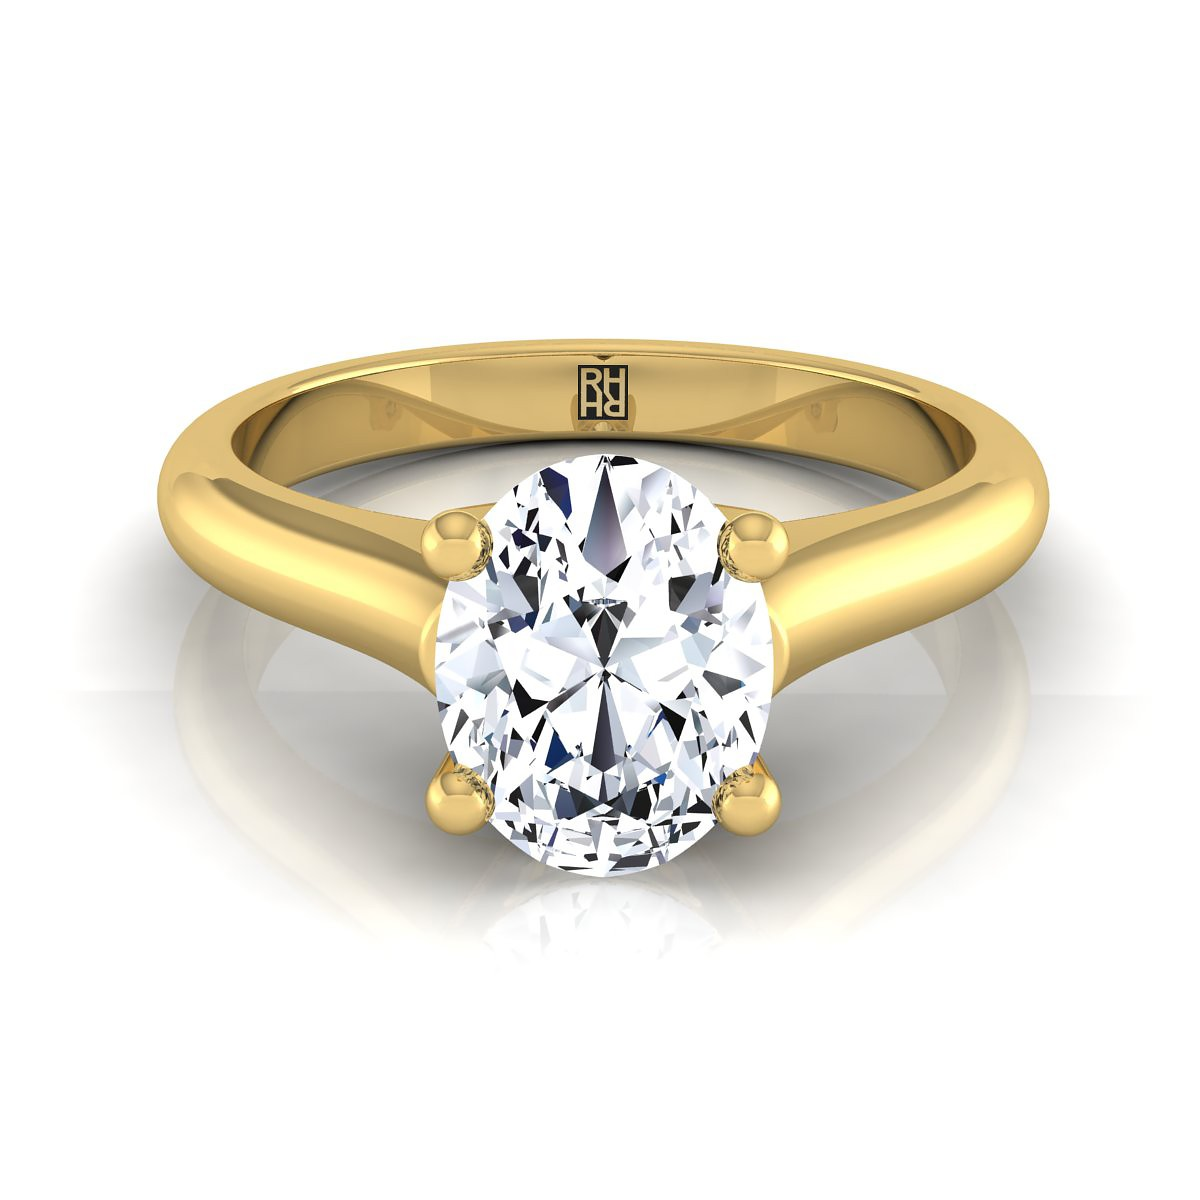 Oval Diamond Solitaire Engagement Ring With Rounded Shank And Cathedral  Setting In 14k Yellow Gold